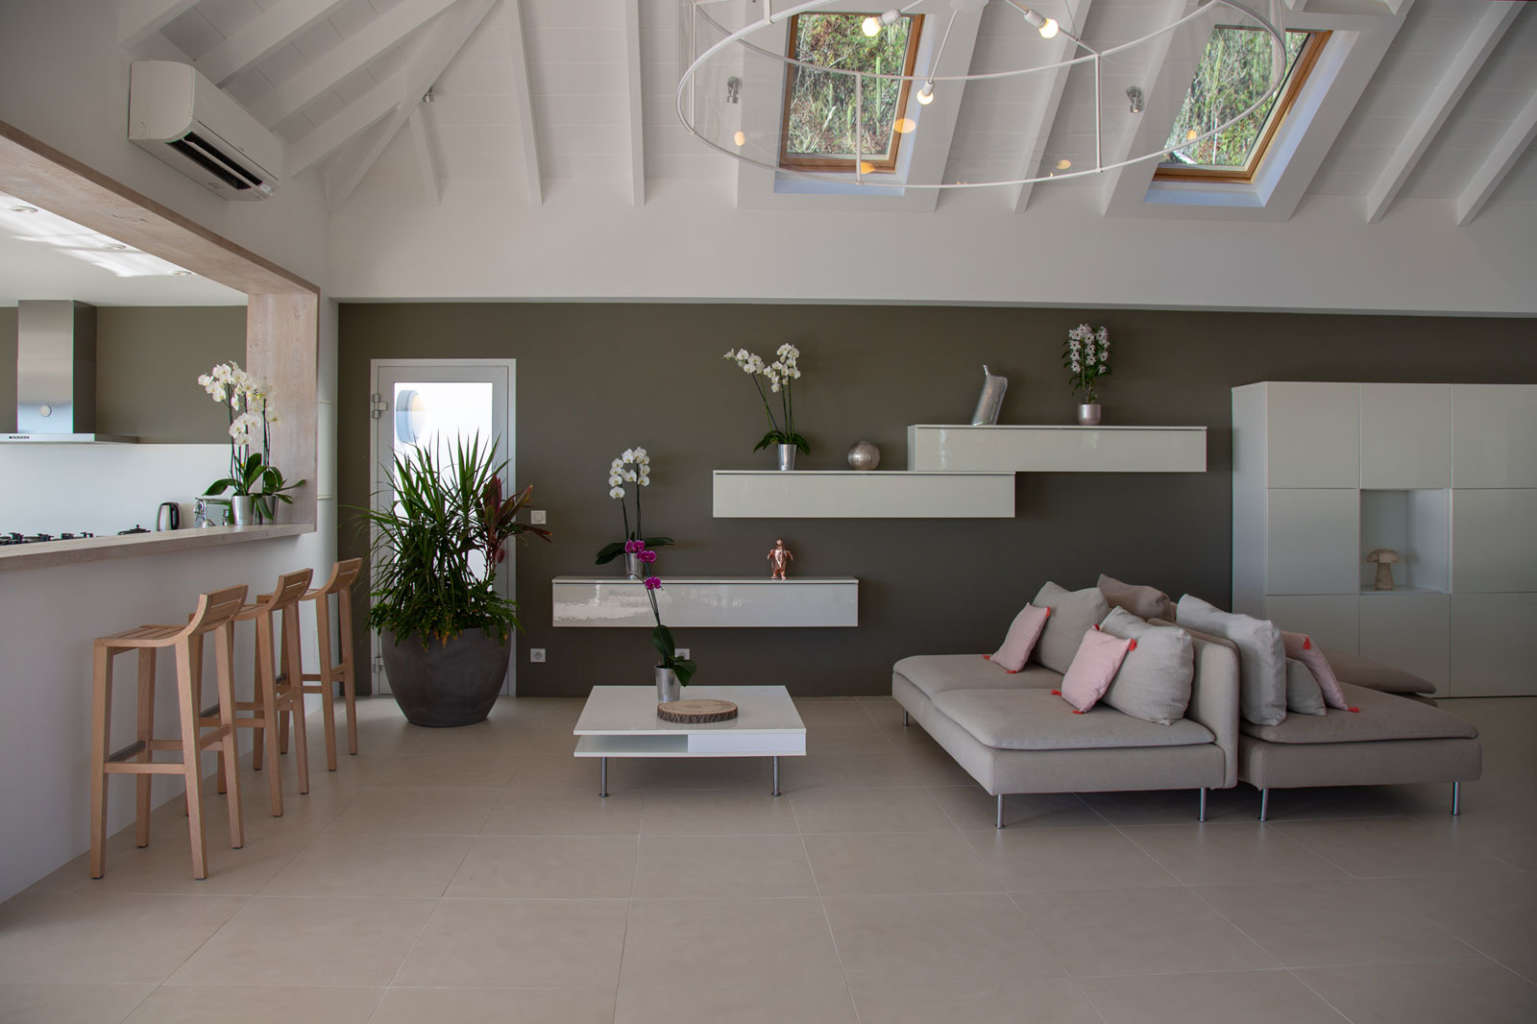 Villa Aka - 3 Bedroom Villa for Rent St Barth Corossol with an Amazing View - Living room